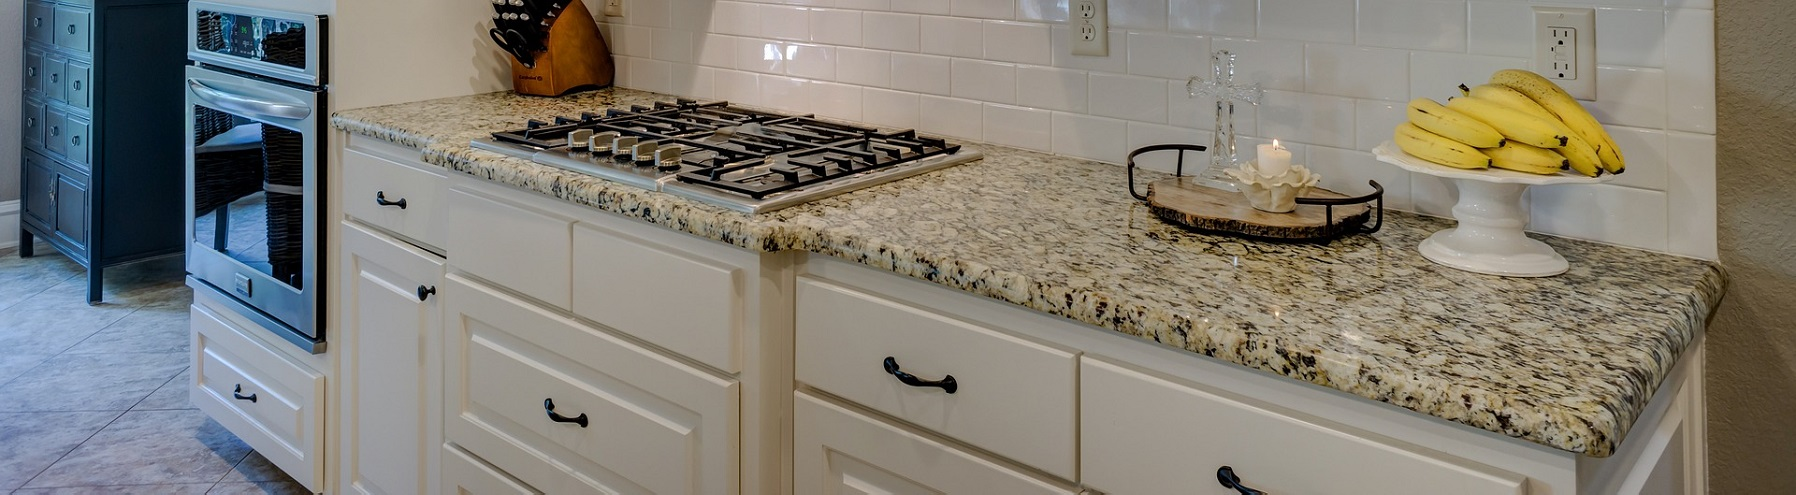 ideas for dutt good v saura sealing polish countertop seal sale countertops stones and granite